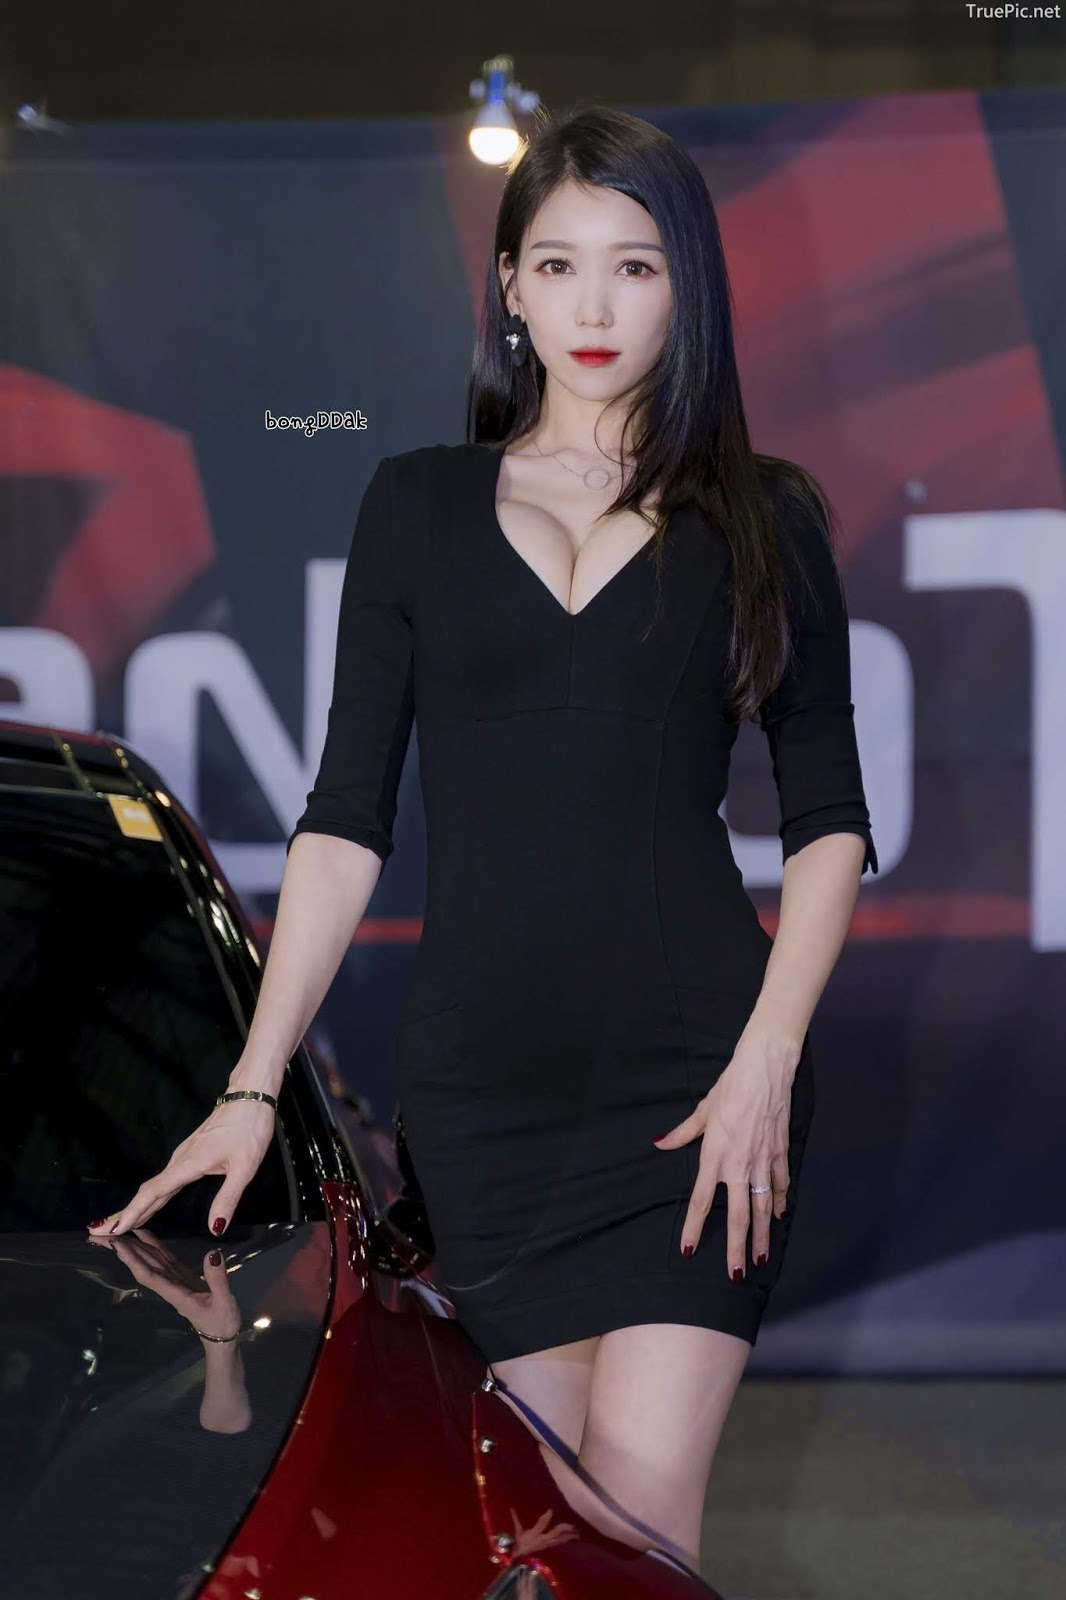 Korean Racing Model - Lee Eunhye - Seoul Auto Salon 2019 - Picture 3